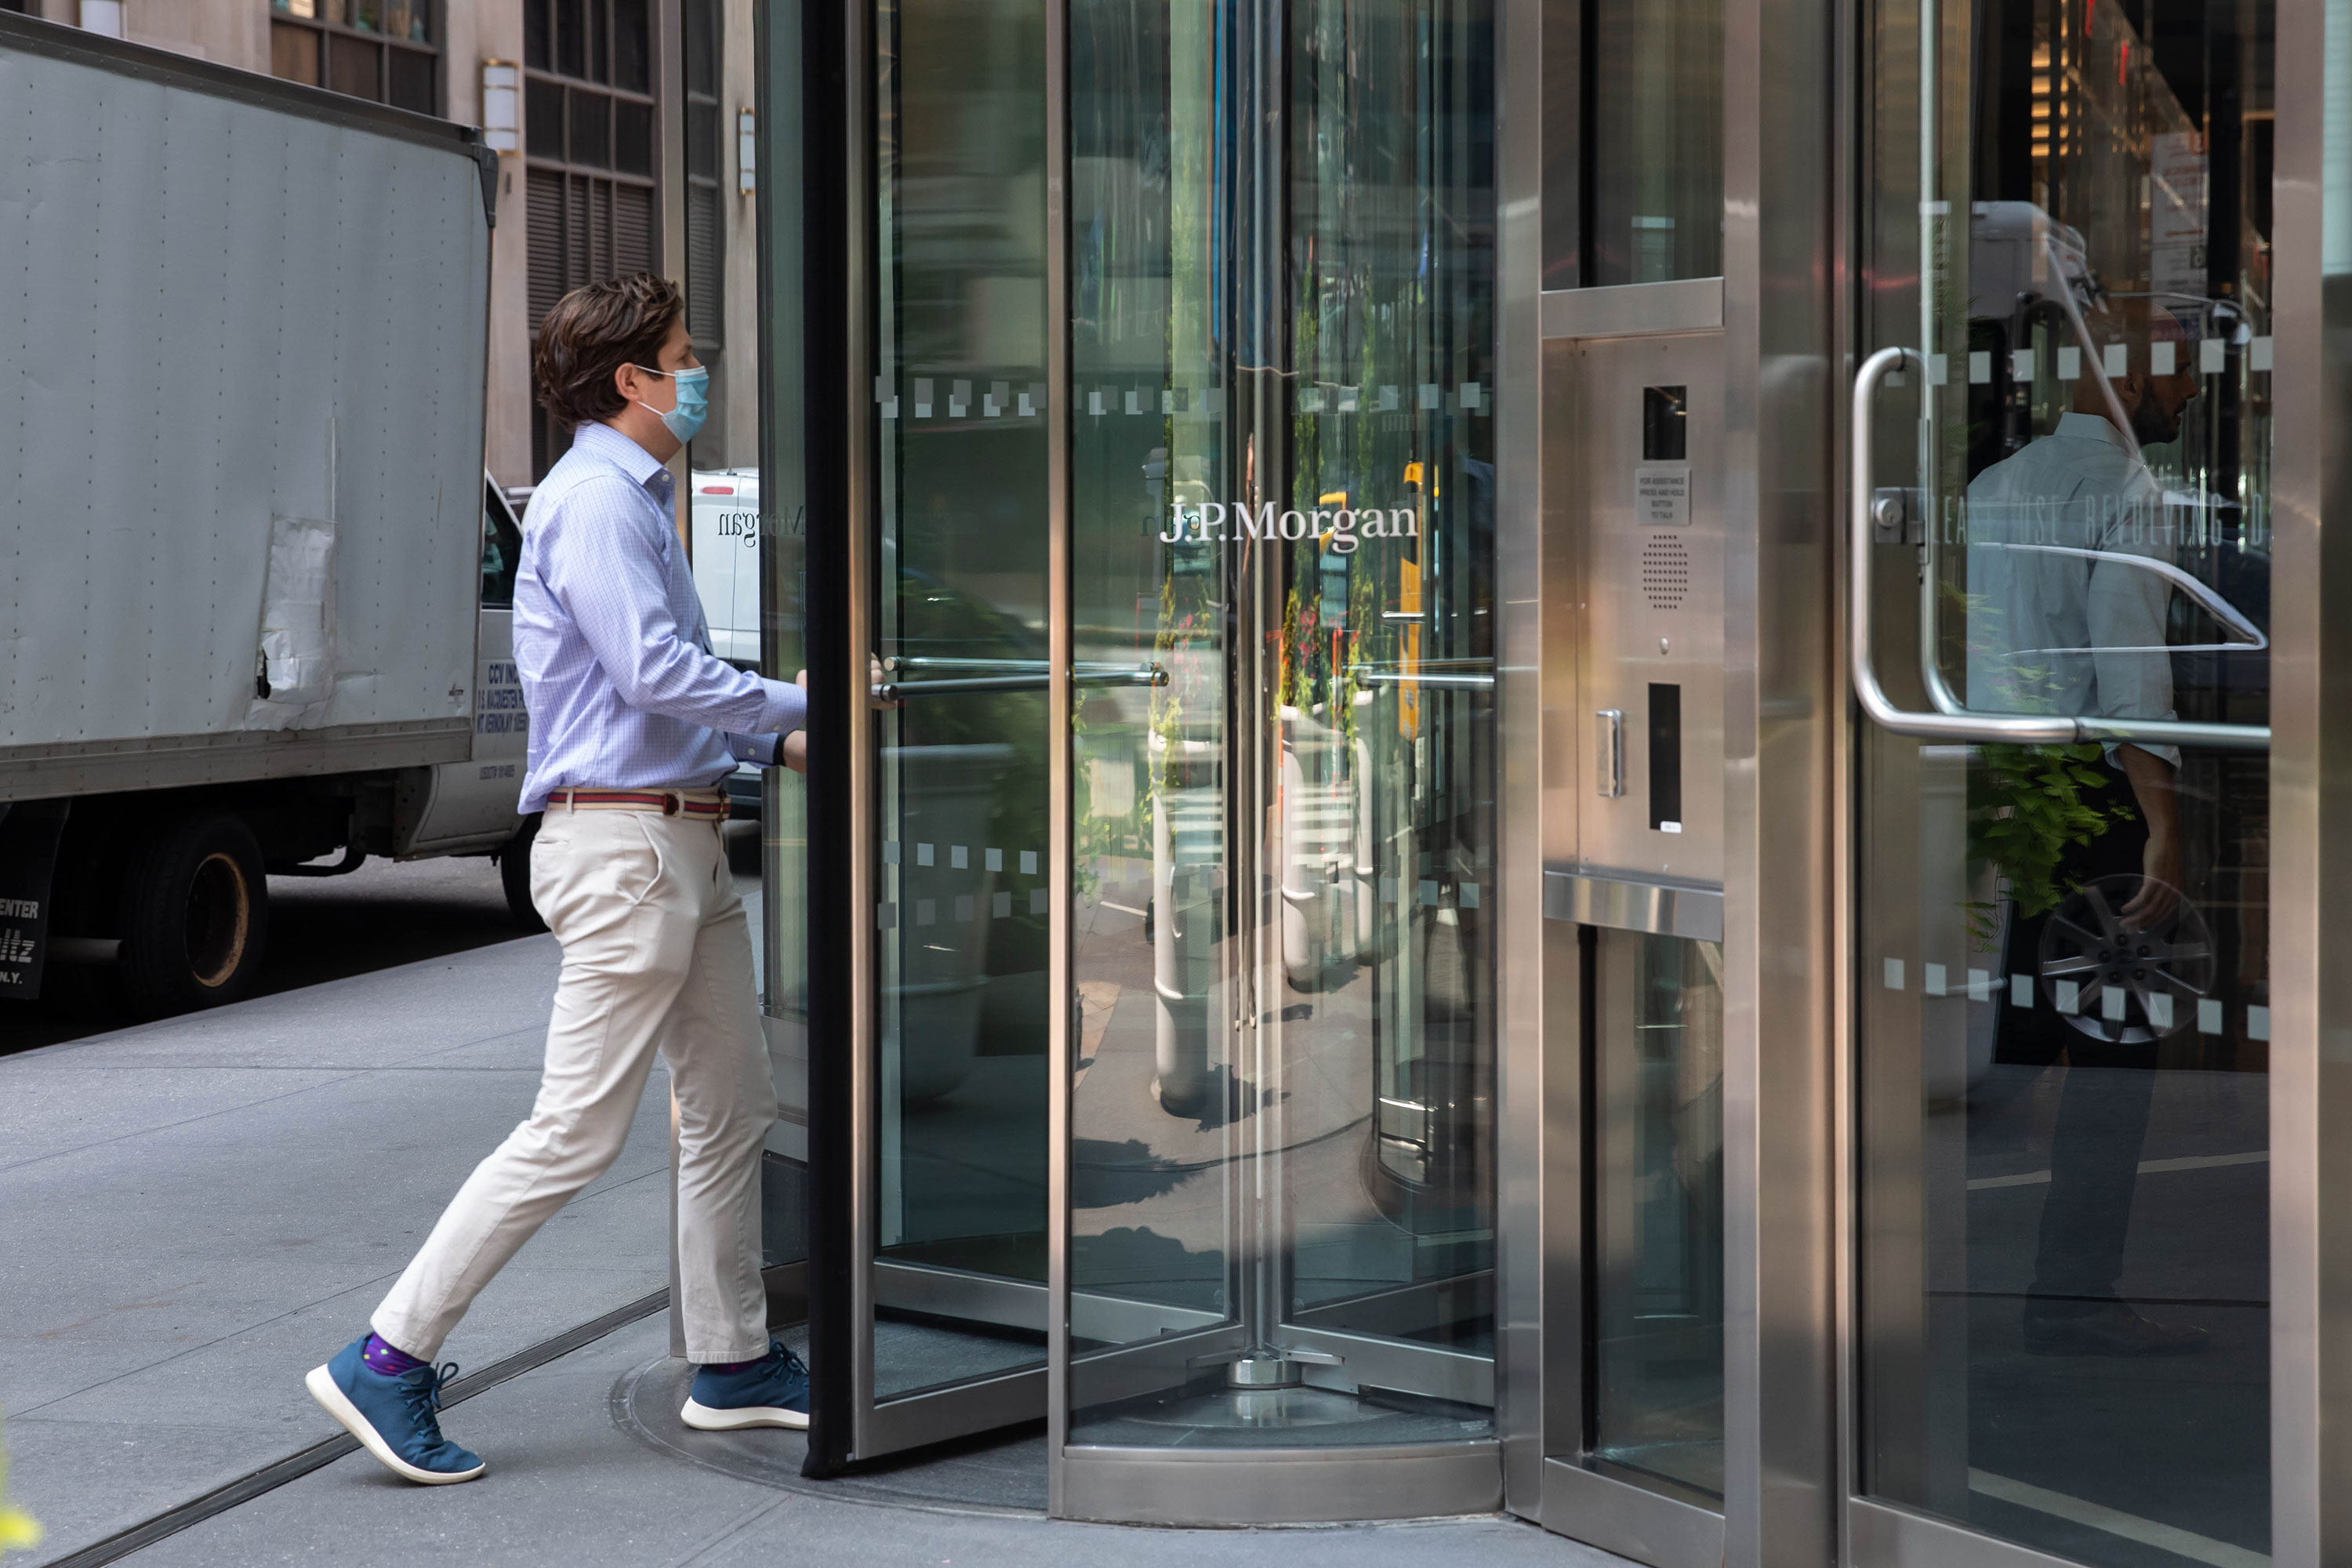 An office worker enters the JPMorgan Chase & Co. headquarters in New York on July 22.